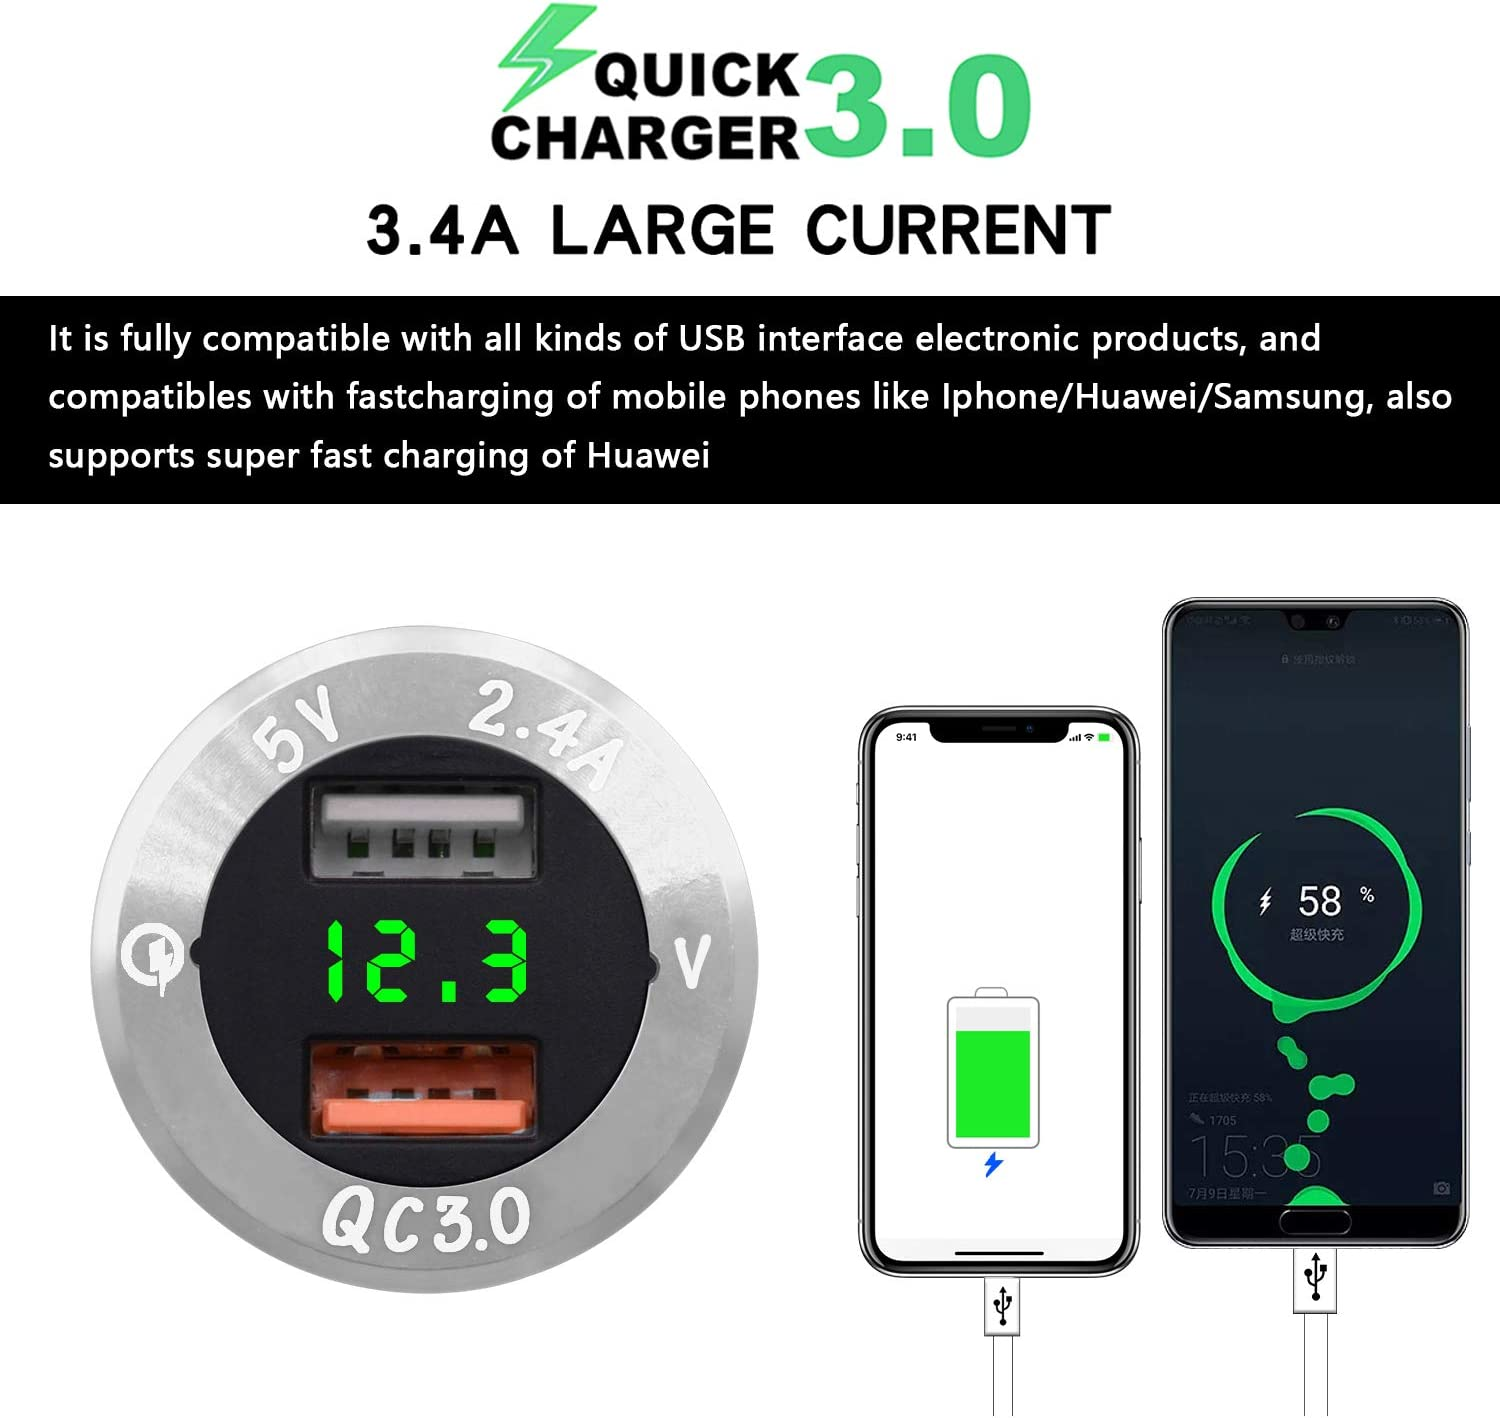 Silver-Green BlueFire Upgraded Aluminum Alloy Quick Charge 3.0 USB Car Charger Socket /& 2.4A USB Port IP66 Waterproof Dual USB Power Outlet with Voltmeter for Car Boat Marine Rv Motorcycle